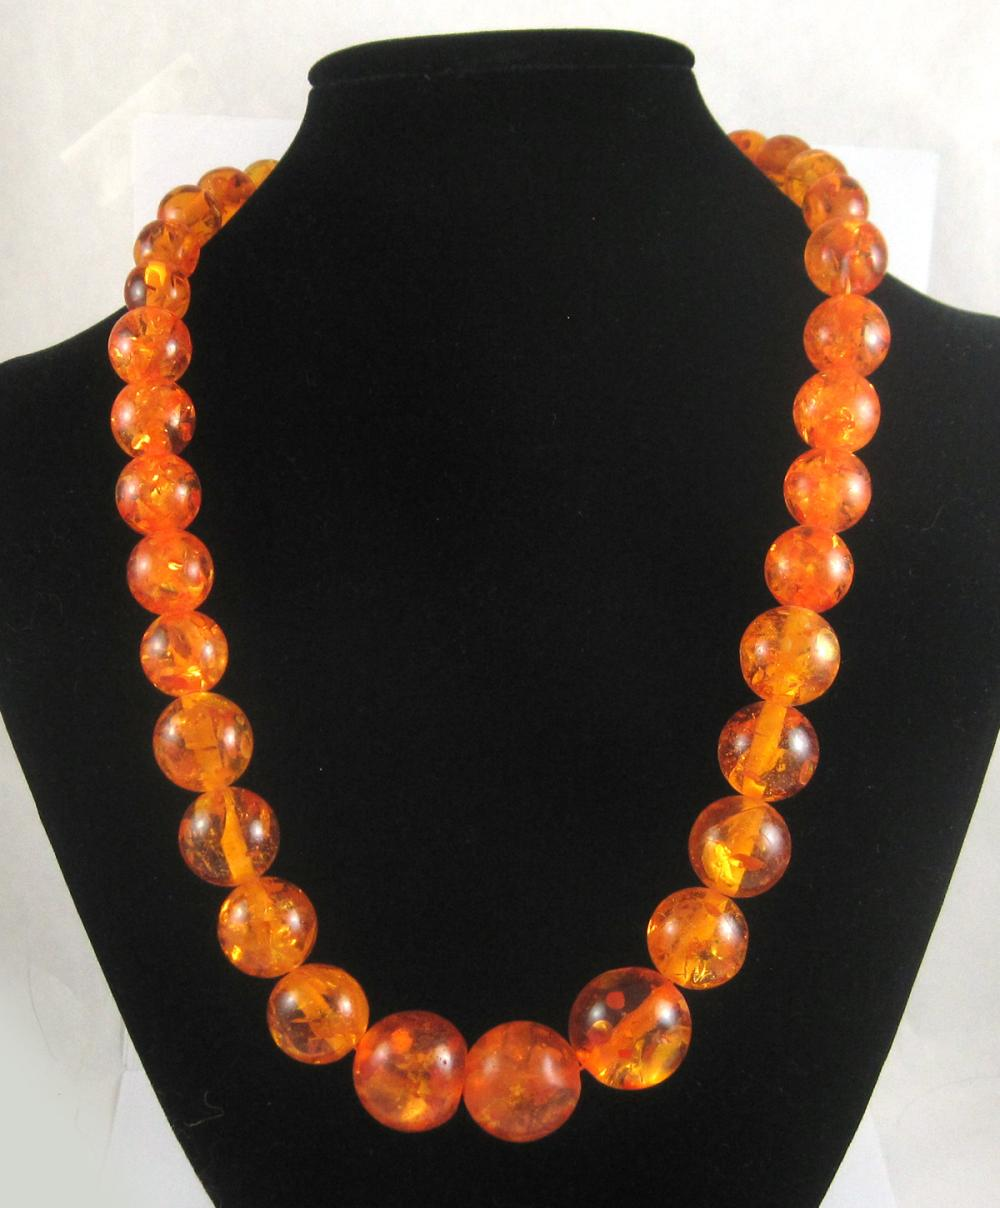 NATURAL BALTIC AMBER GRADUATED BEAD NECKLACE, meas